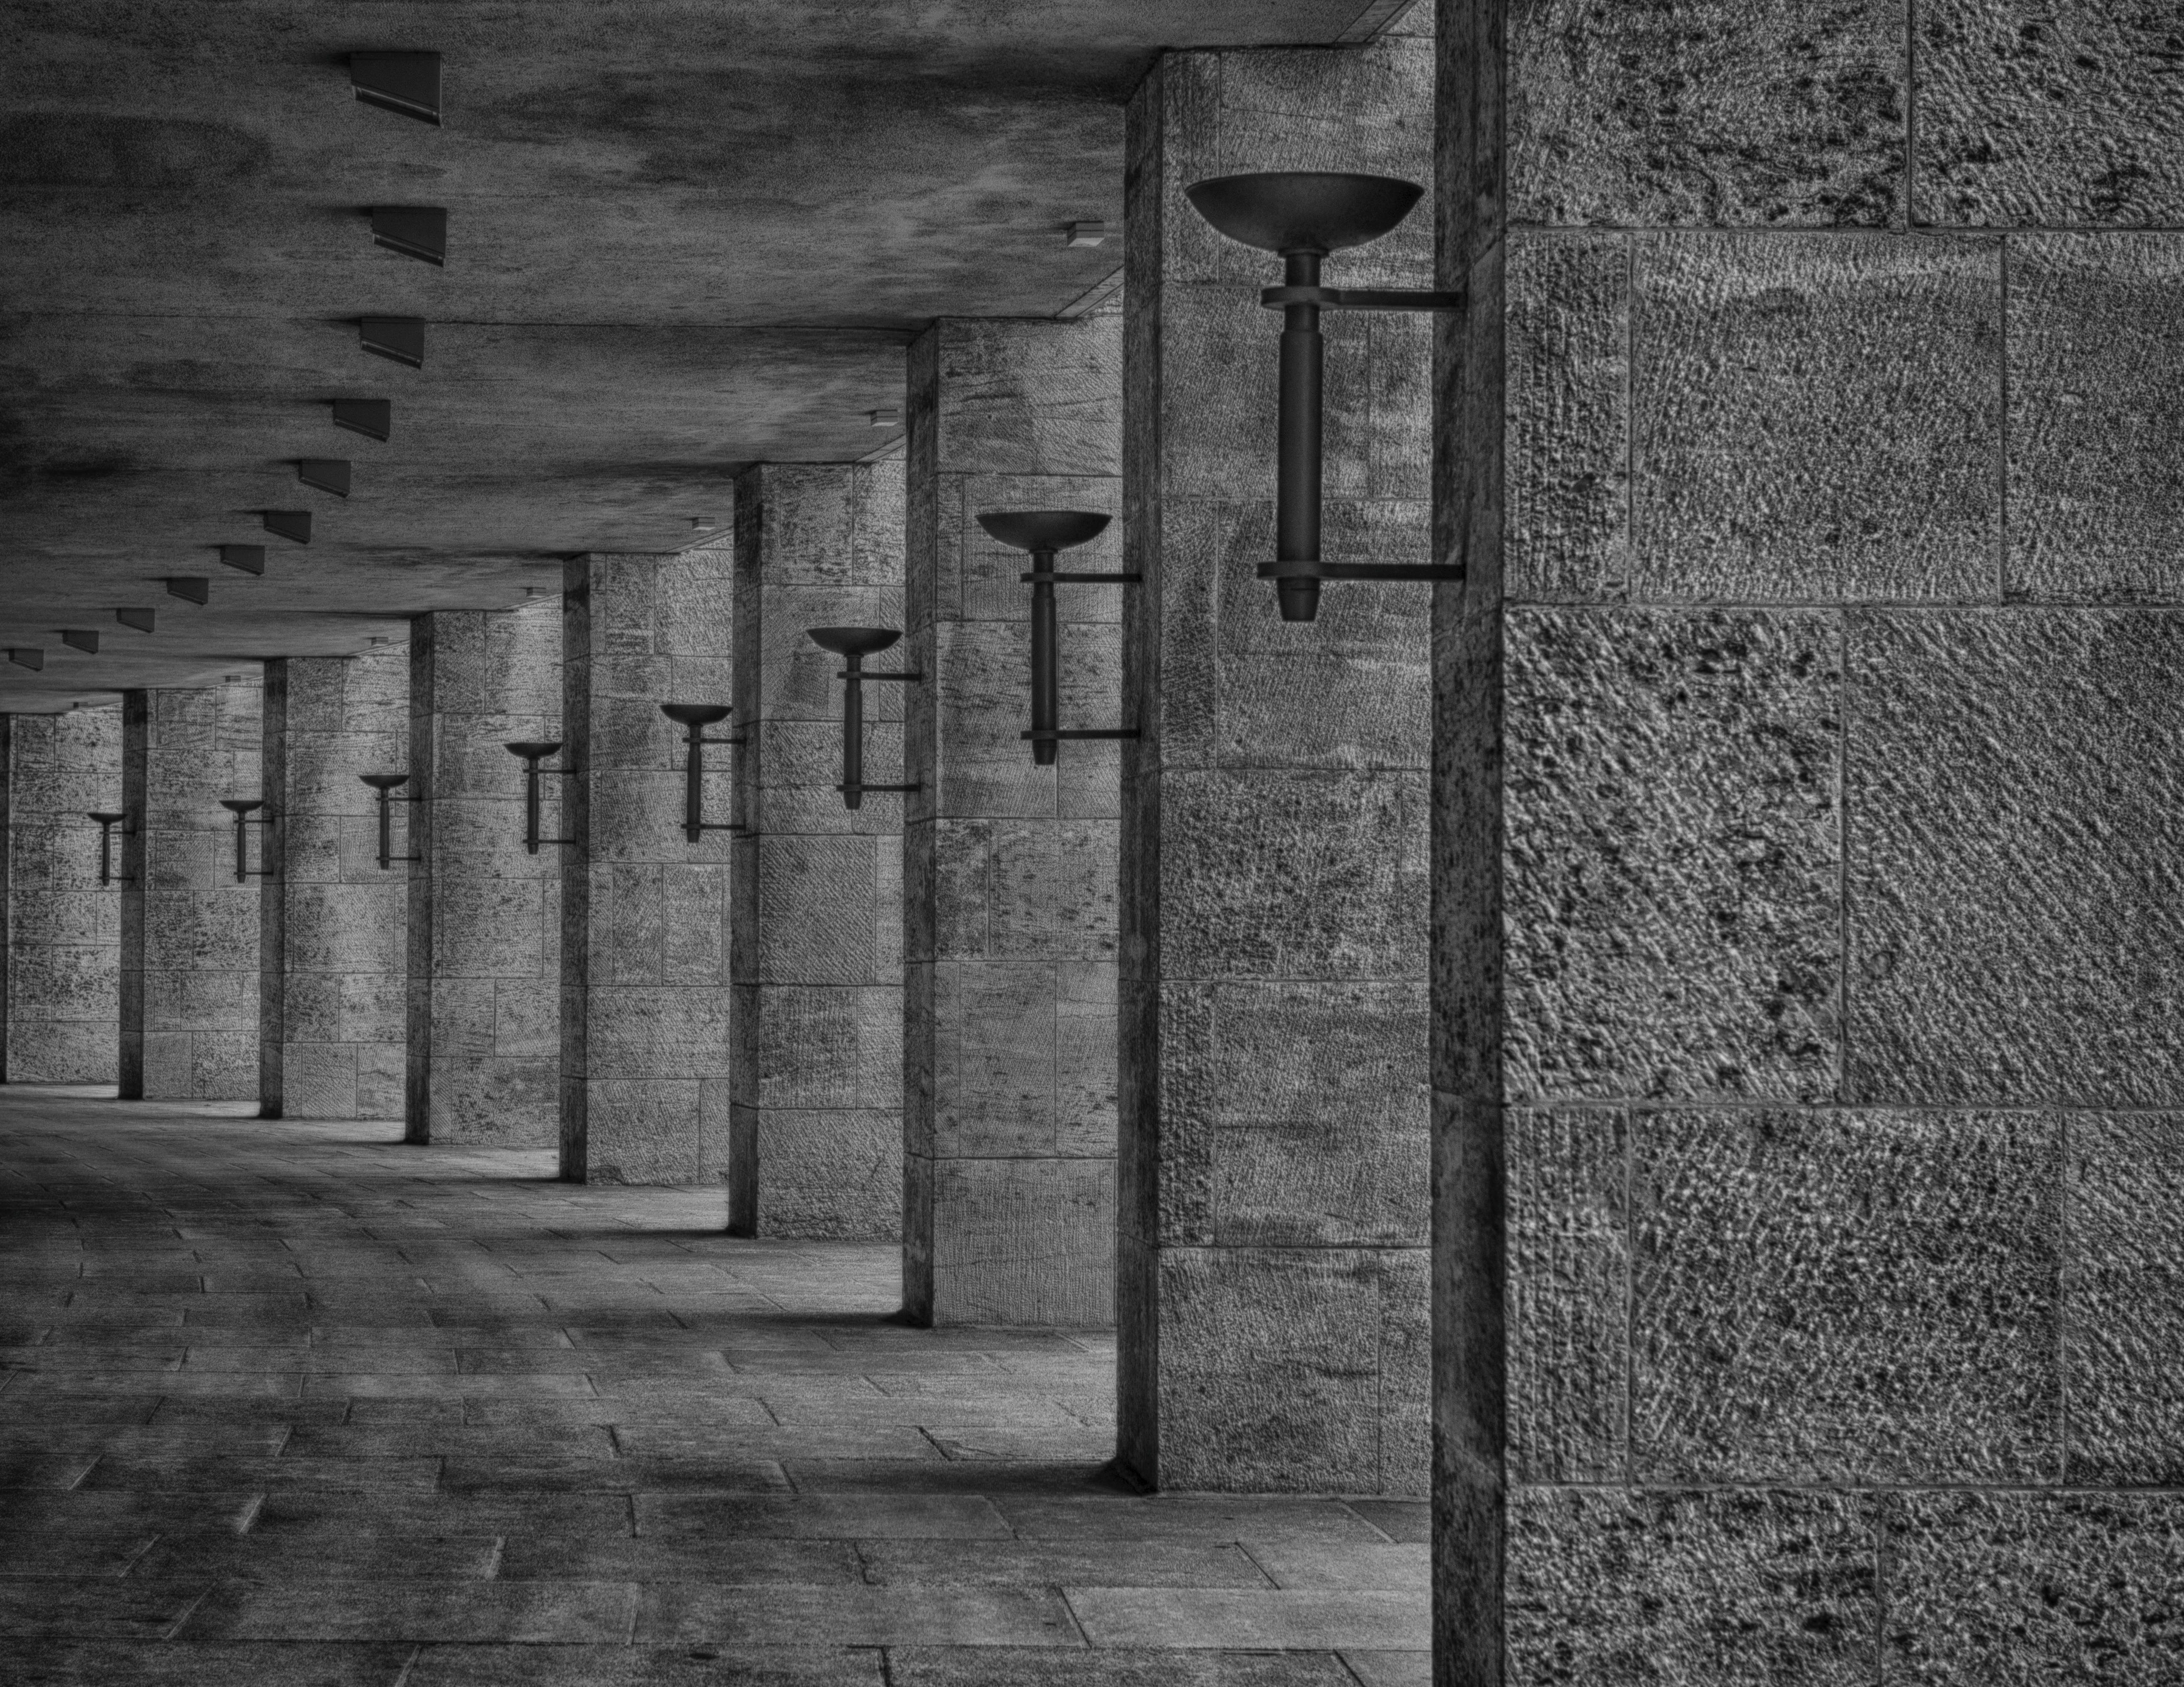 Grayscale Photography of Concrete Column With Torch